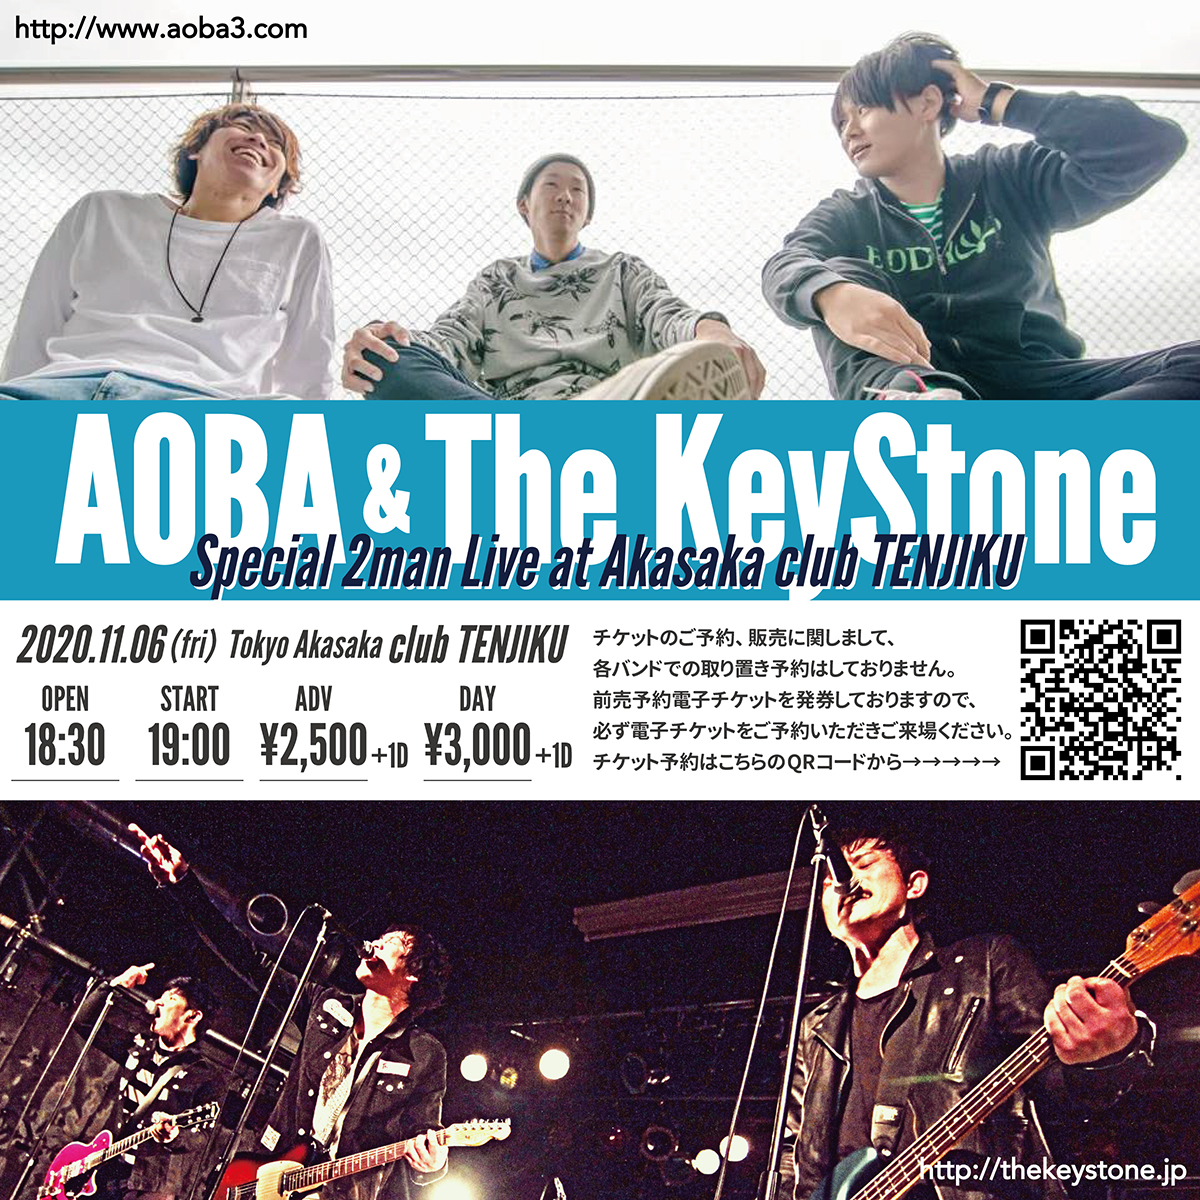 AOBA & The KeyStone Special 2man Liveの写真